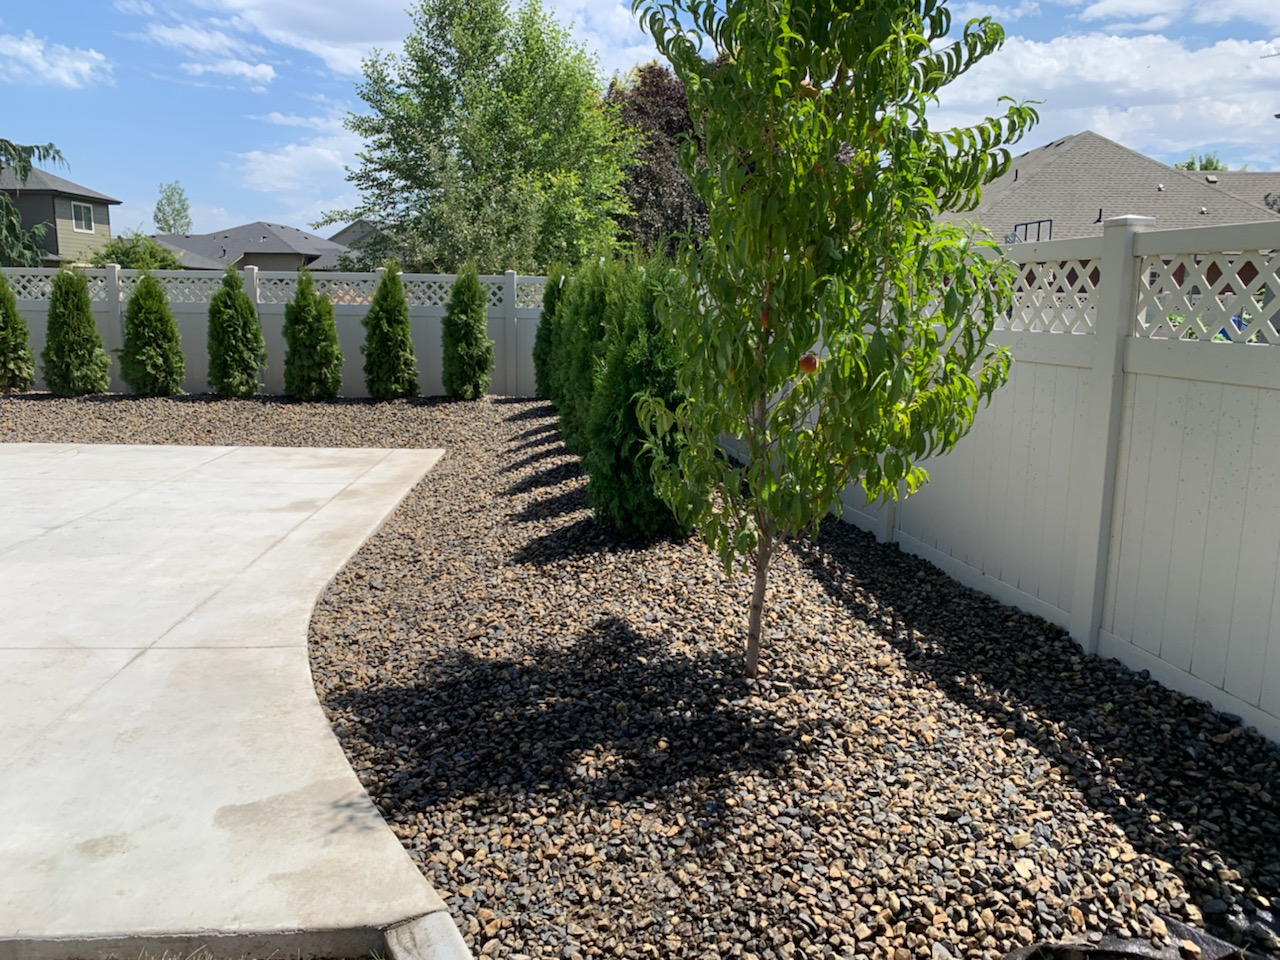 Tree planting and landscape management in Boise